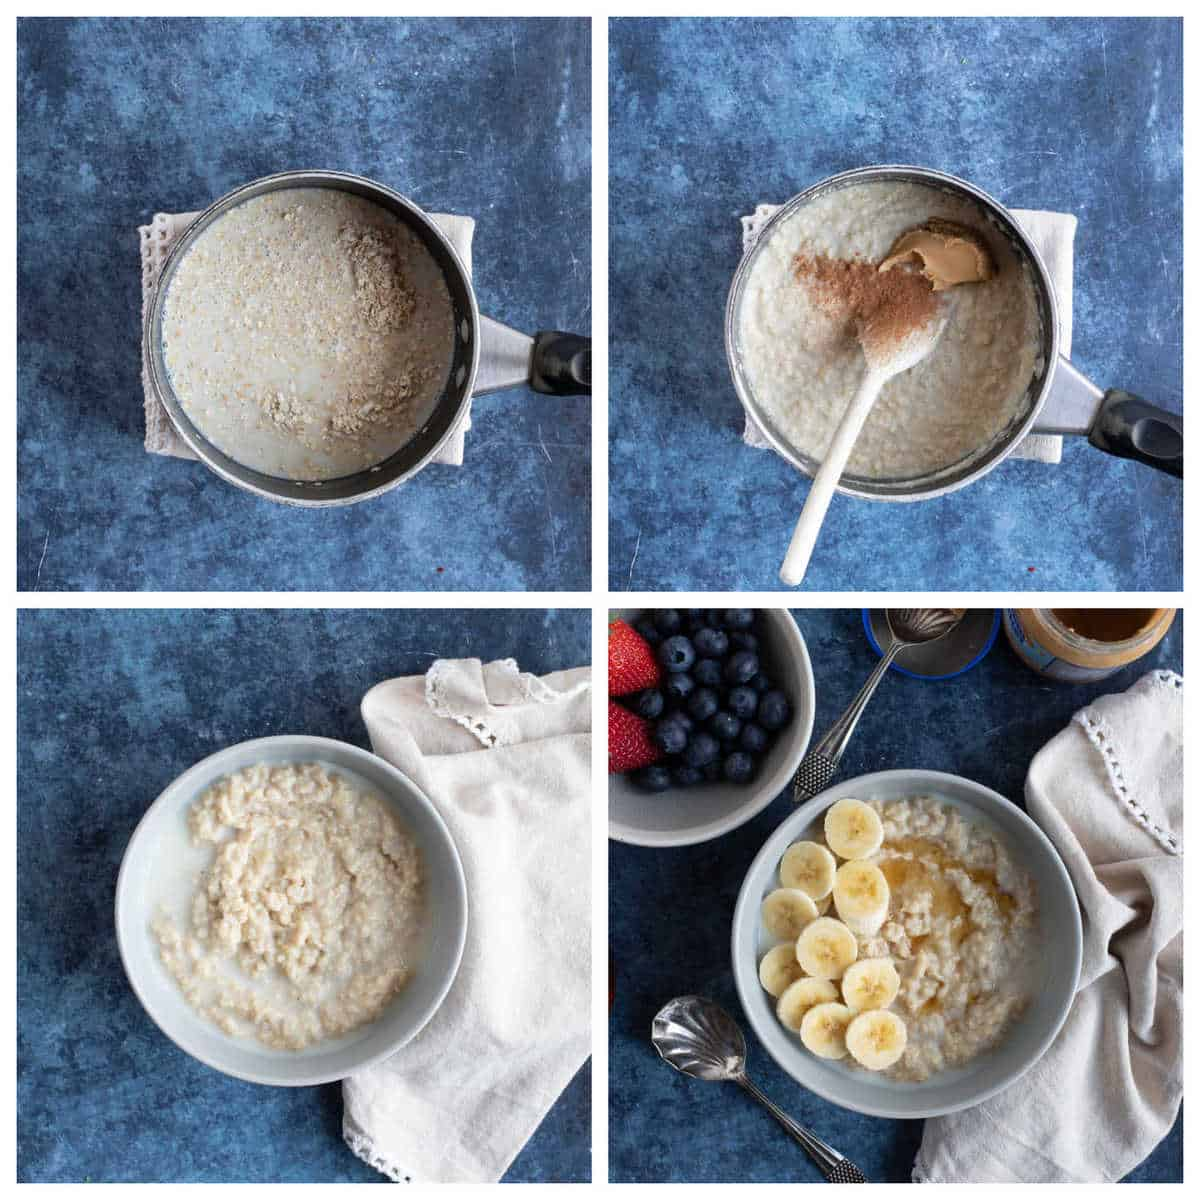 Step by step photo instructions for making peanut butter oatmeal.